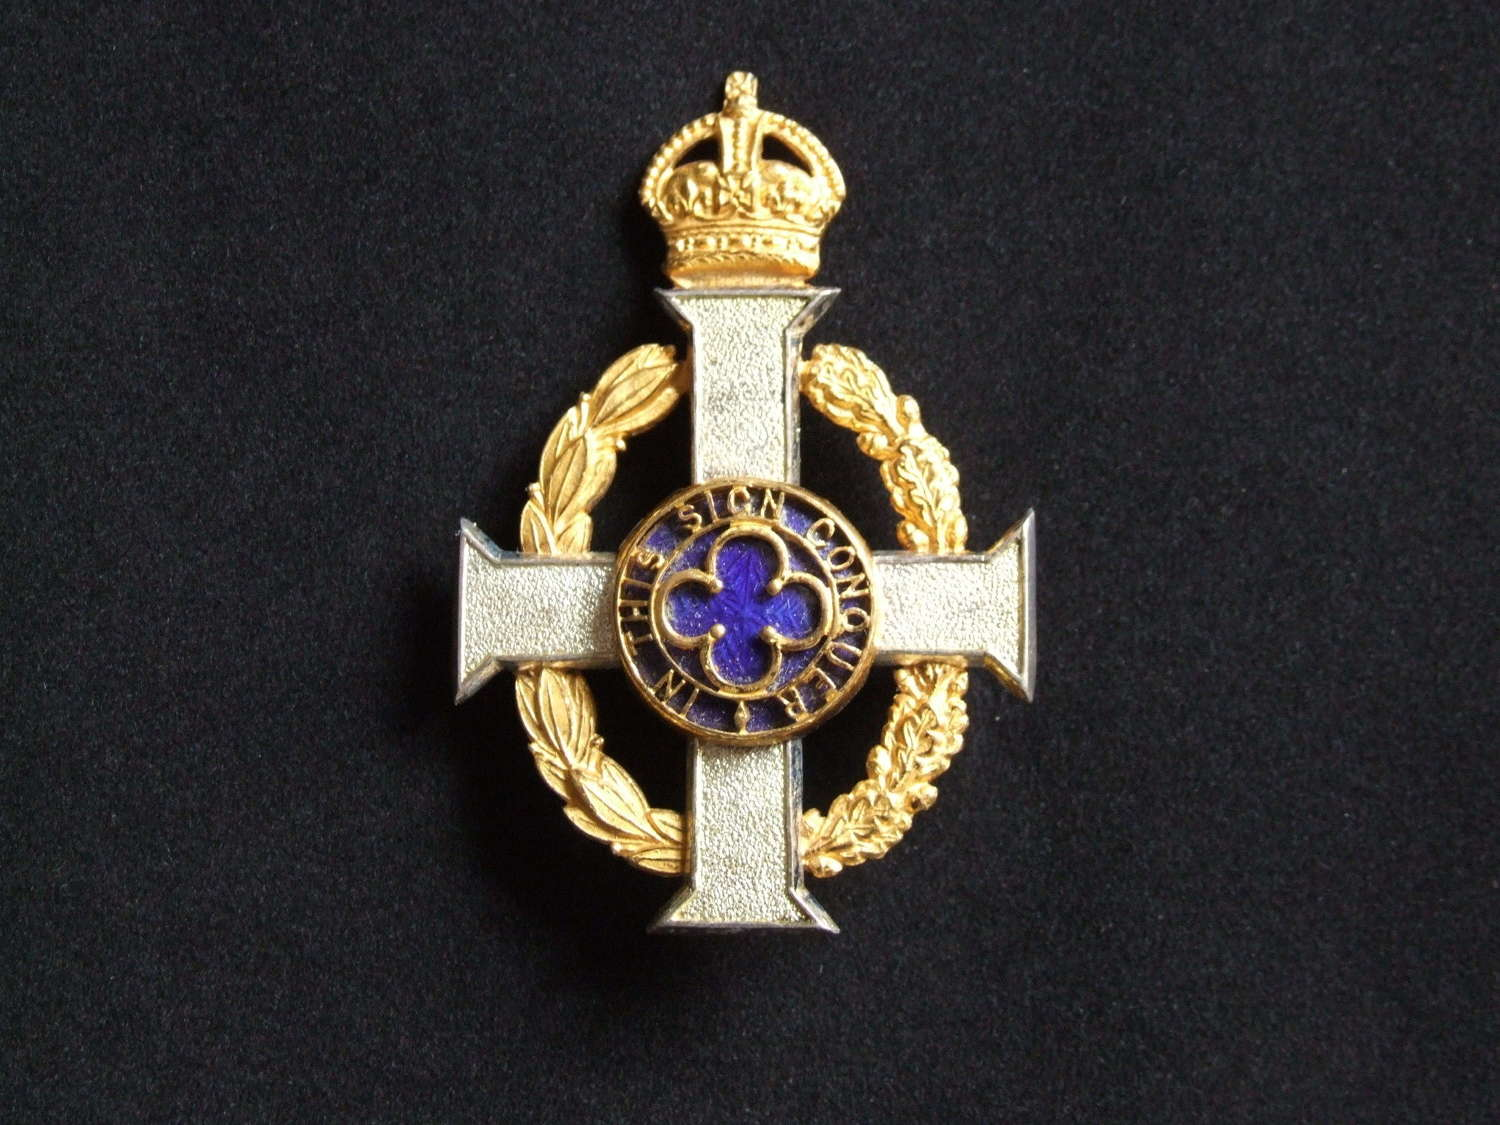 British Army Chaplain's Kings Crown Stole Badge